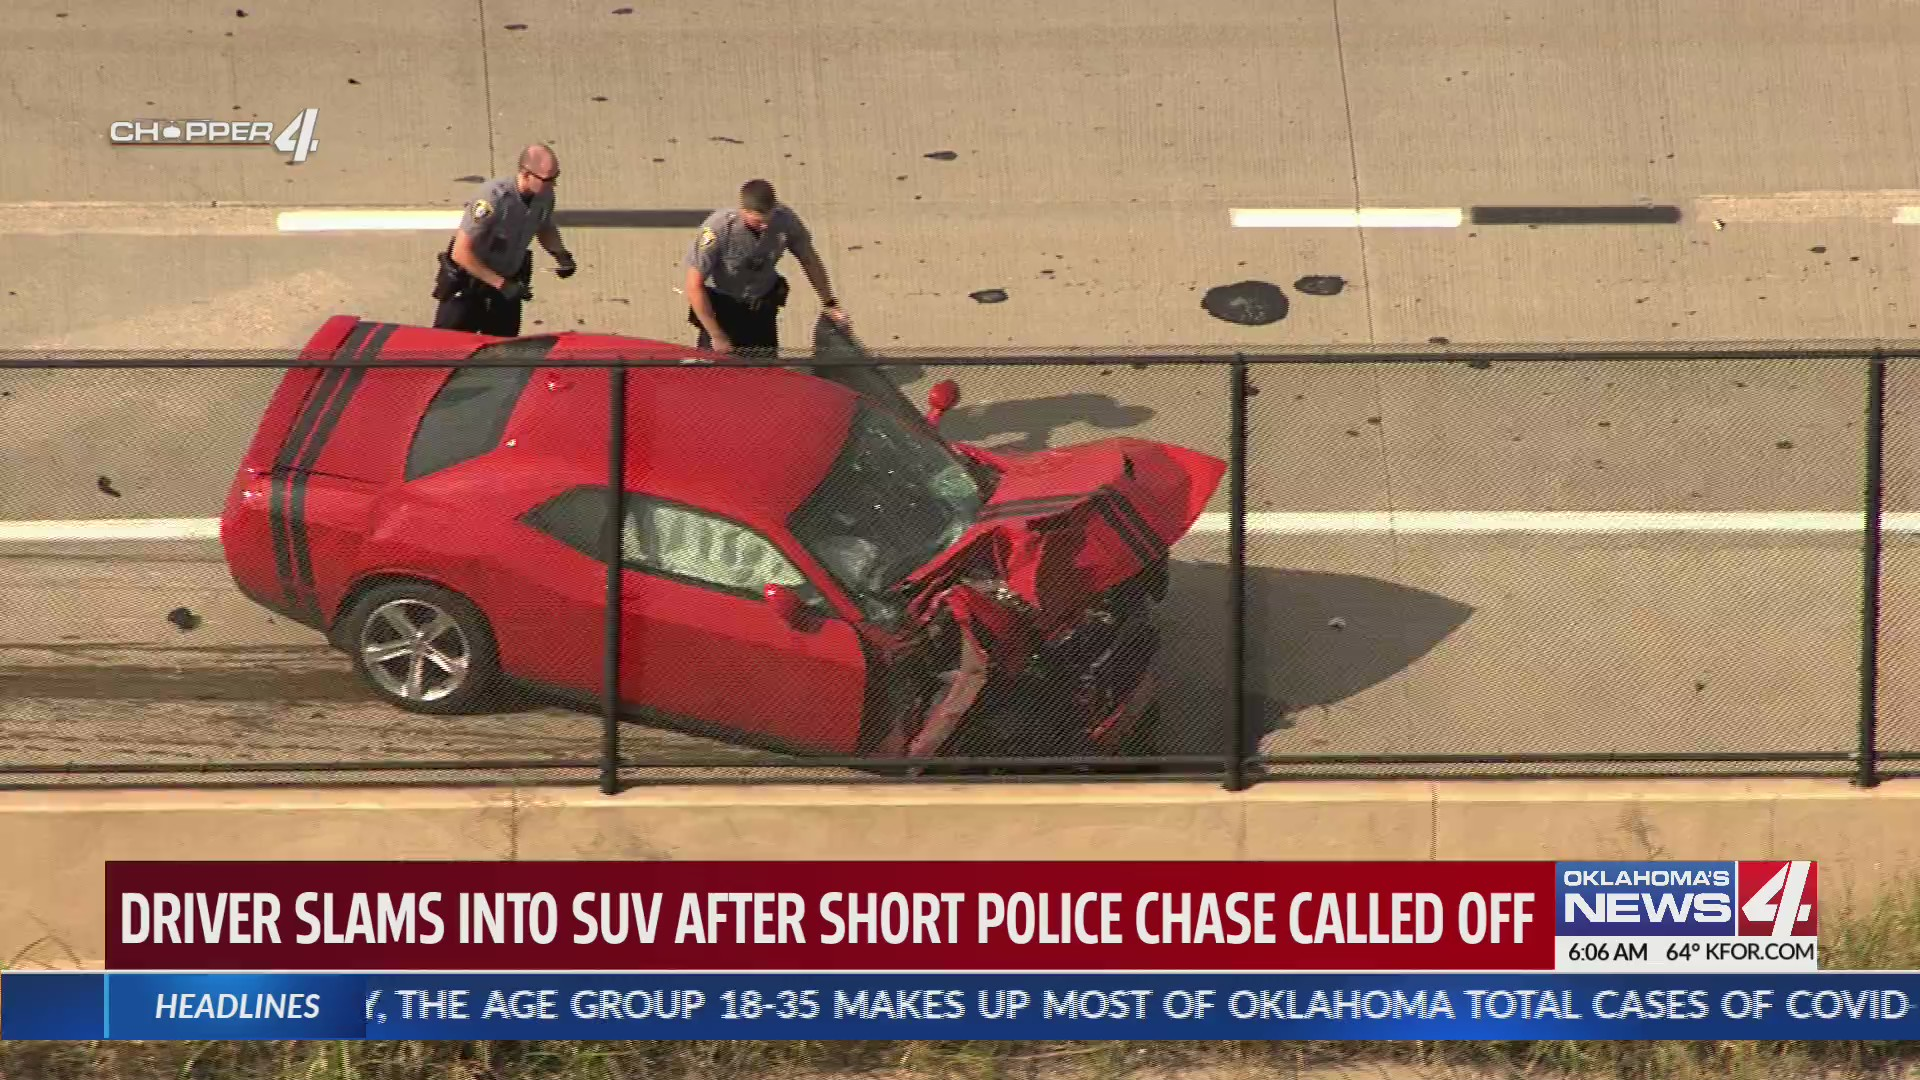 Car crashes after chase